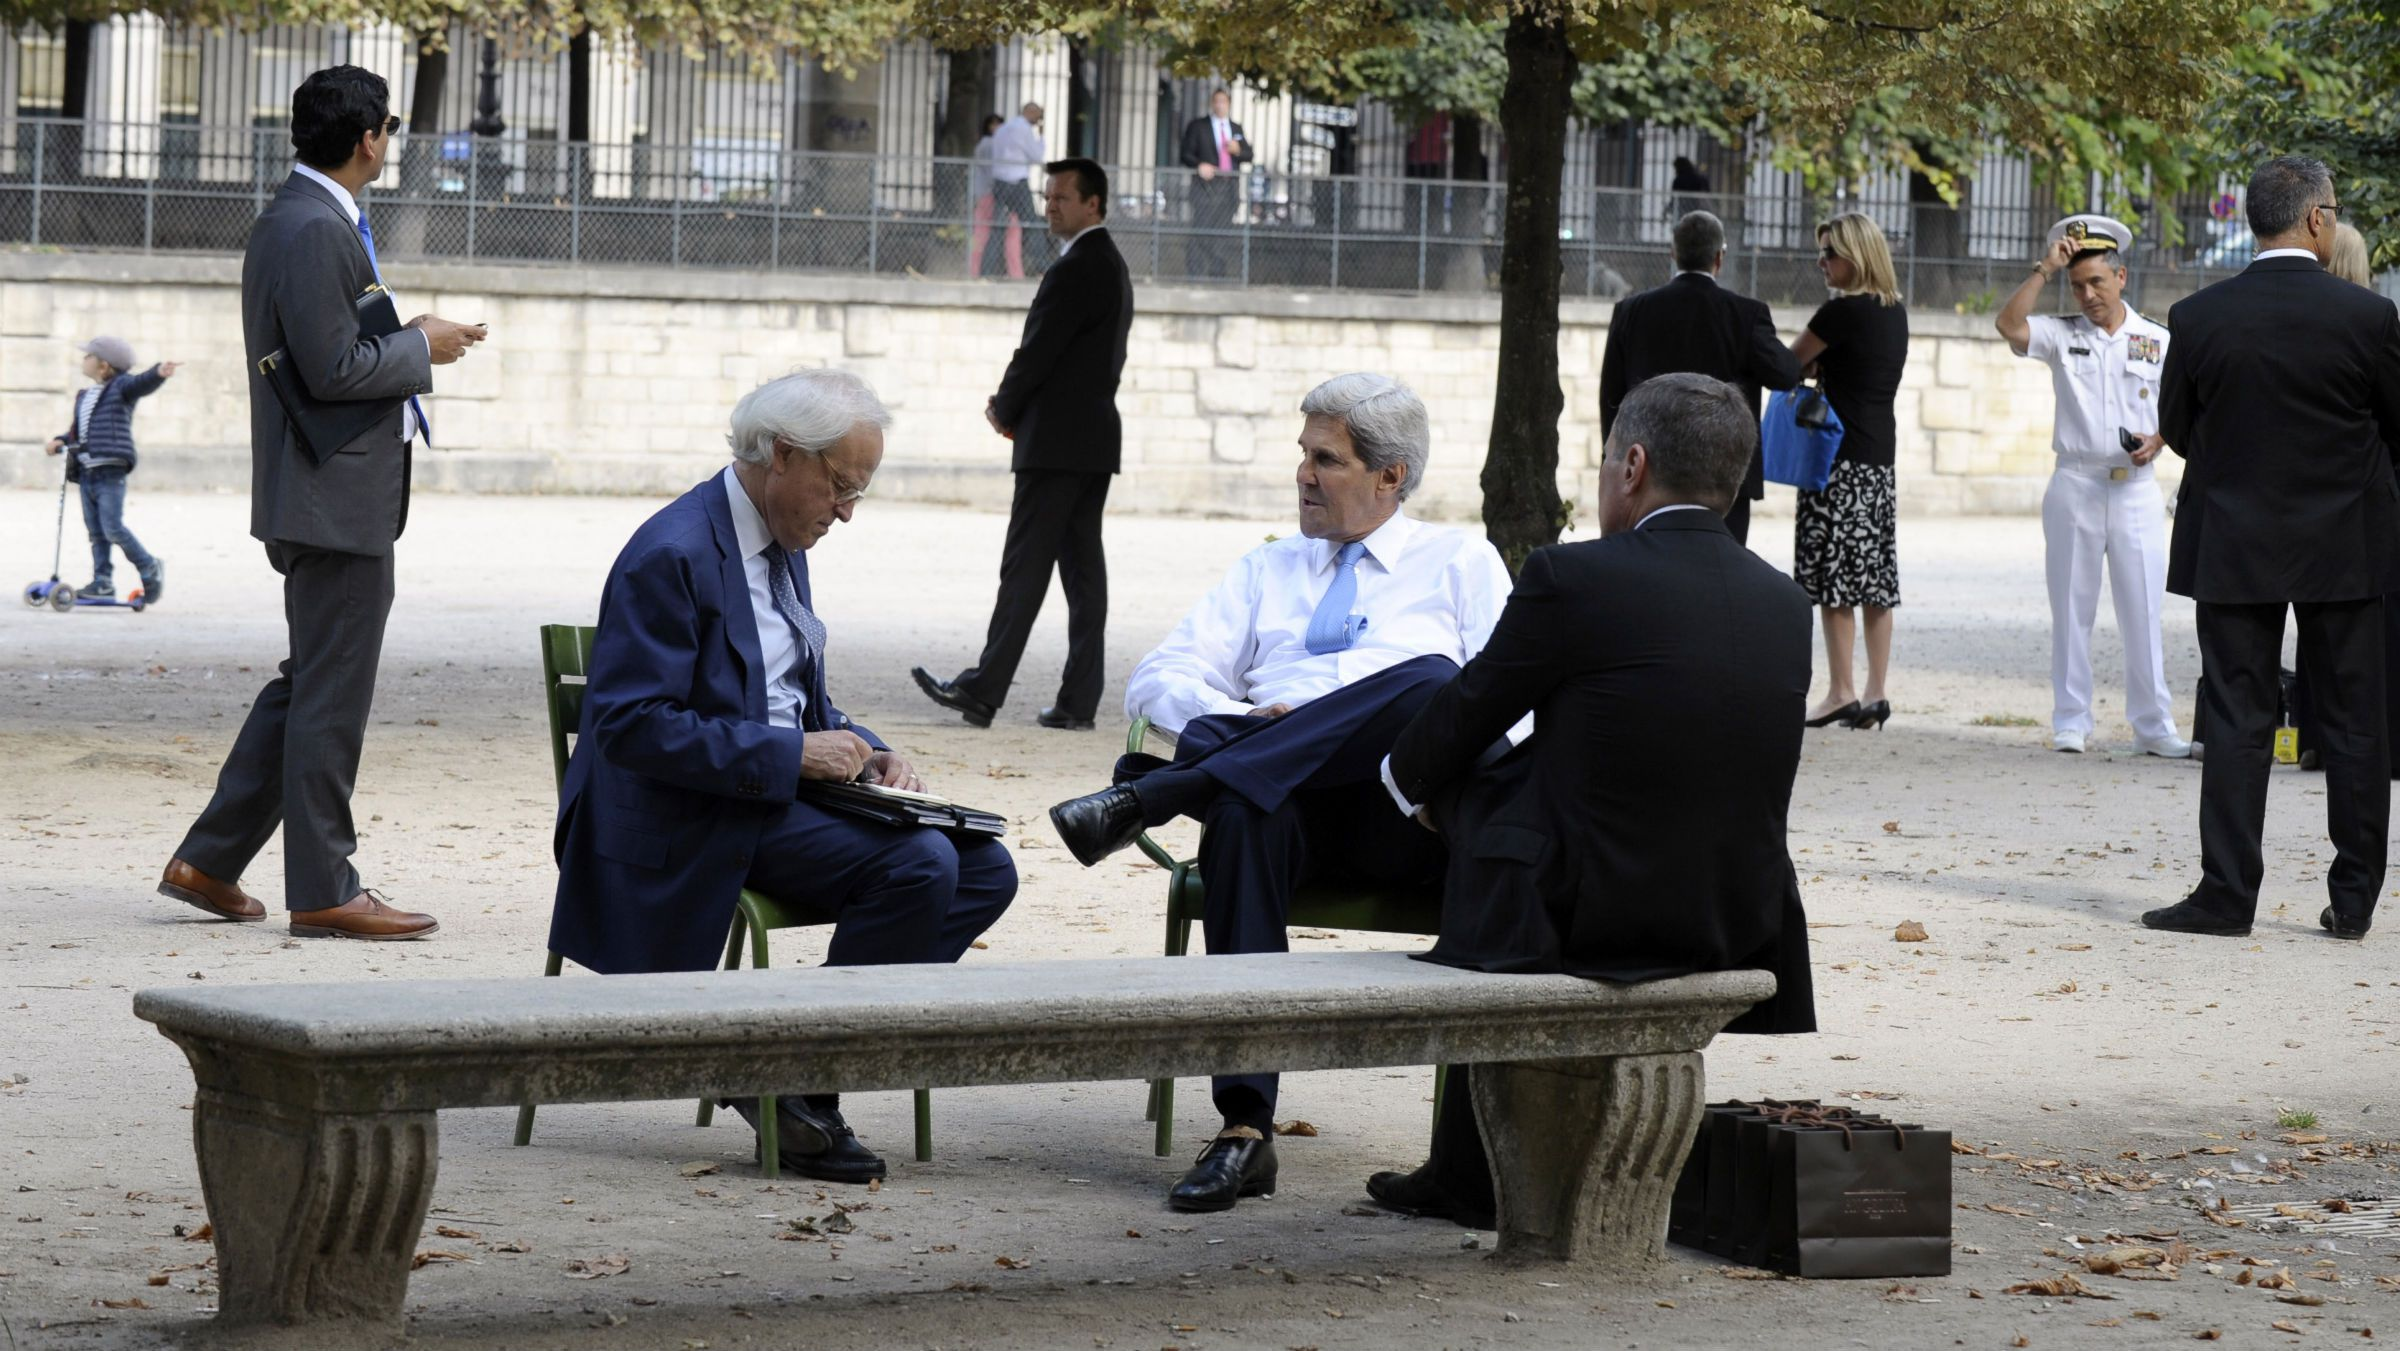 U.S. Secretary of State John Kerry (C) sits with U.S. Ambassador to France Charles Rivkin (R) and U.S. Special Envoy for Israeli-Palestinian negotiations Martin Indyk (L) at Les Tuilleries park in Paris September 8, 2013.